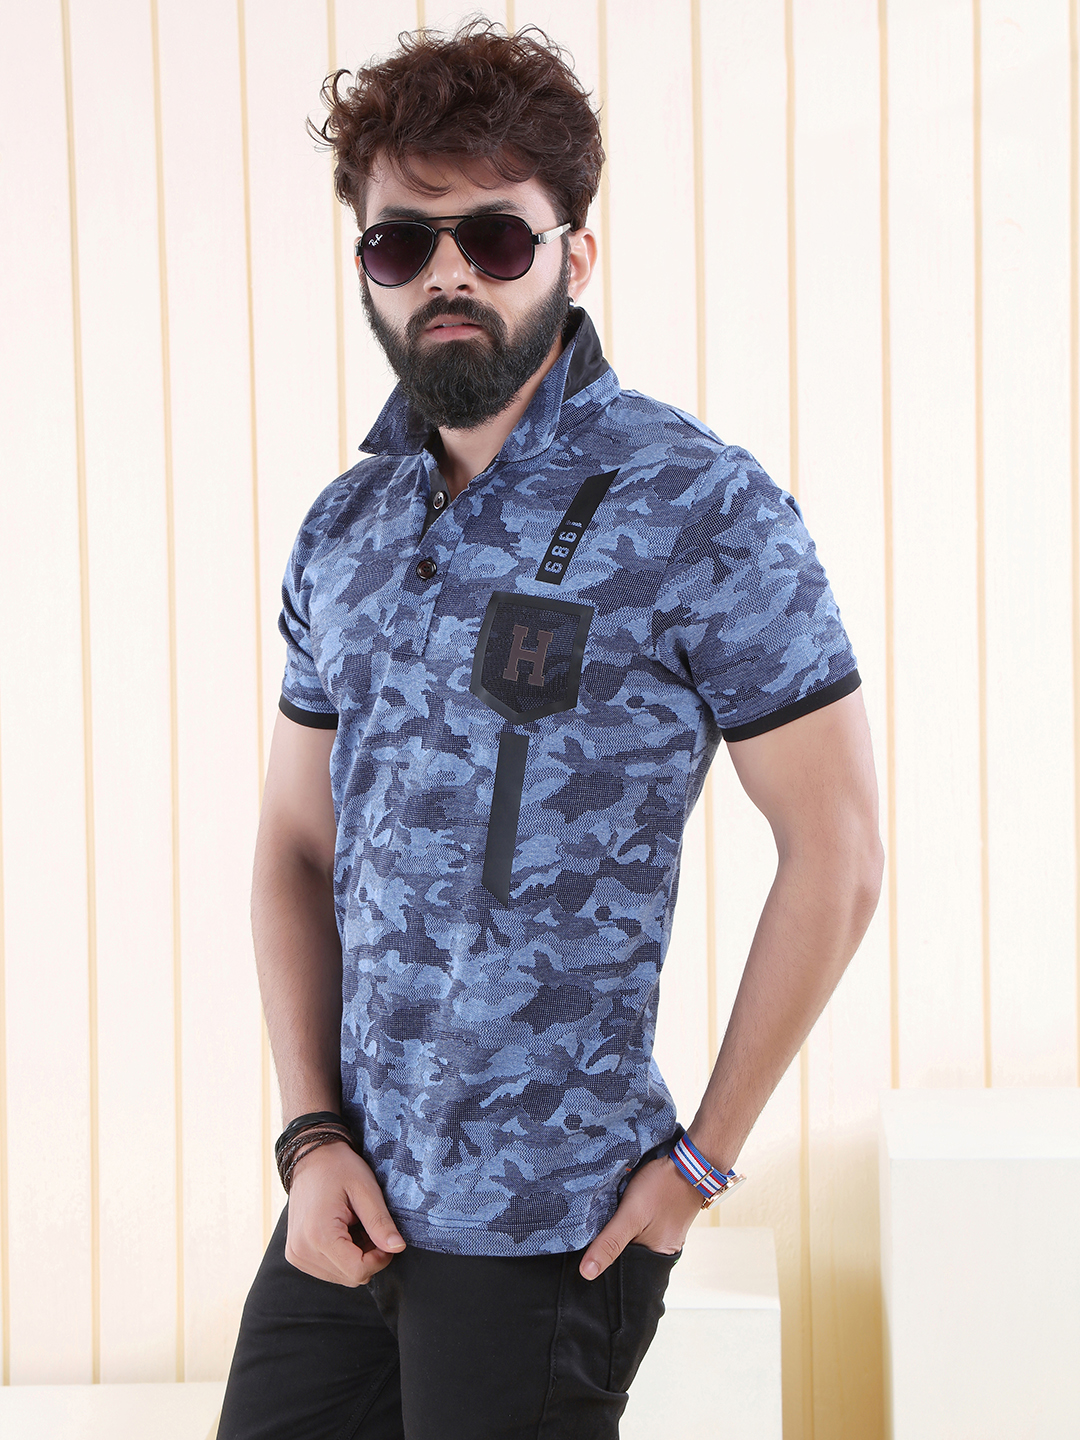 Hats off blue printed cotton t shirt g3 mts4907 for T shirt and hat printing